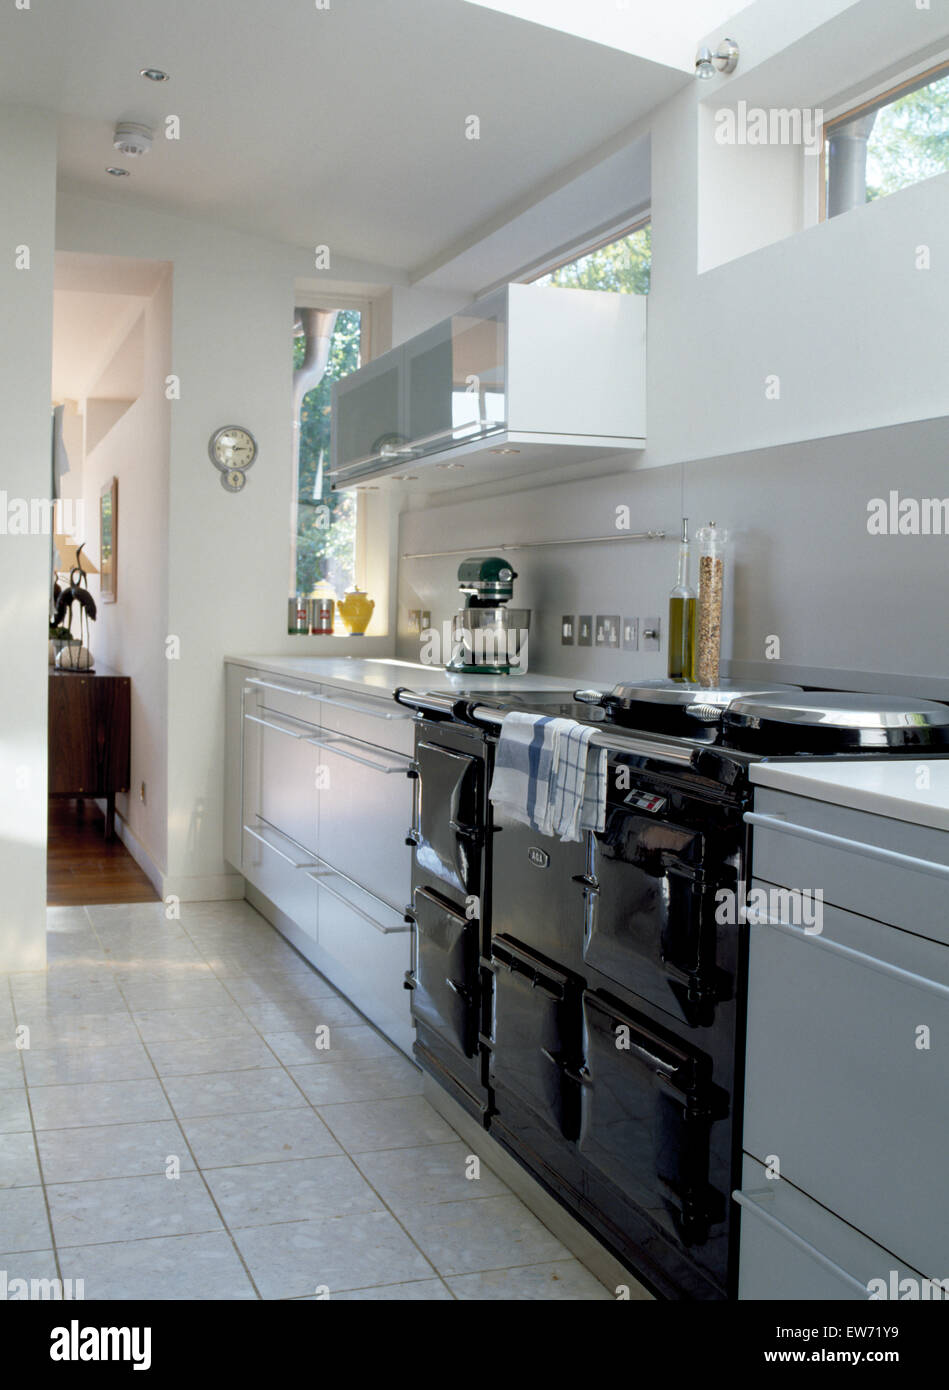 Kitchen Design Chrome Extension Black Aga Oven In Modern White Kitchen Extension With Chrome Mixer